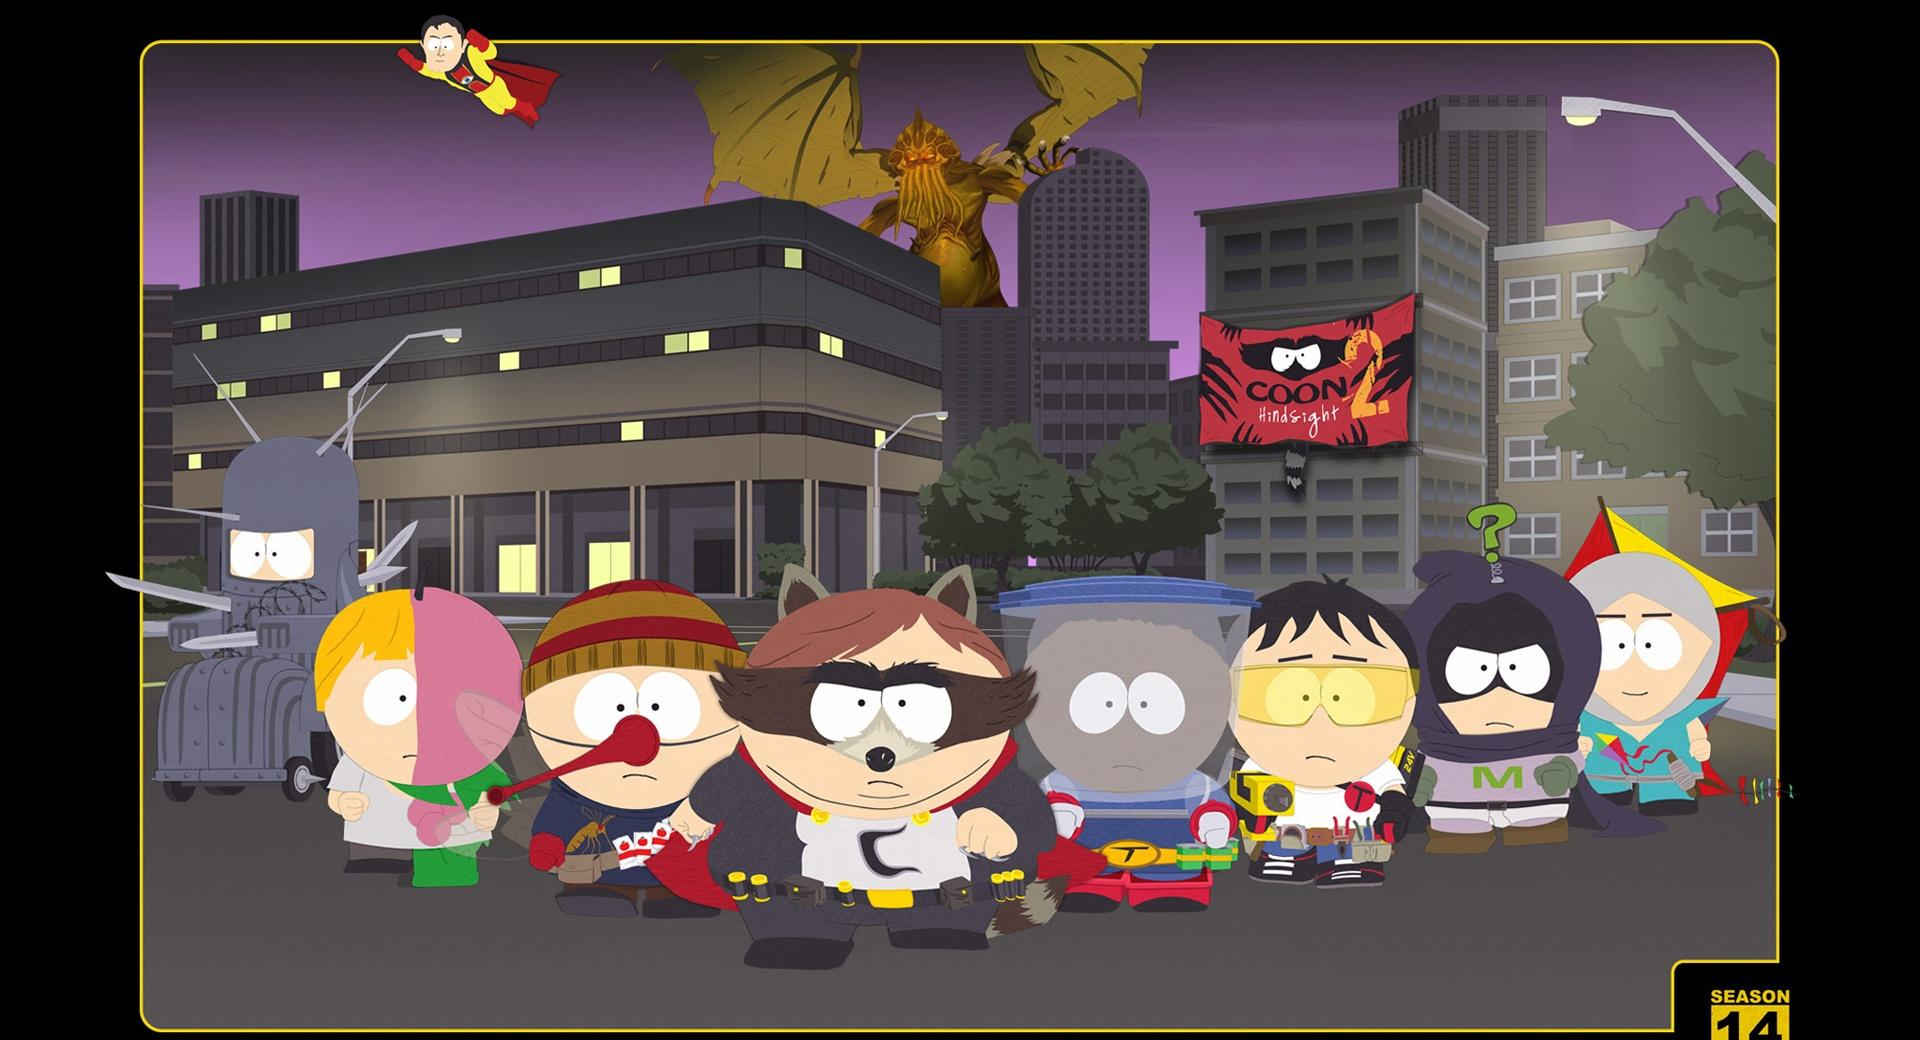 South Park - Coon 2 wallpapers HD quality